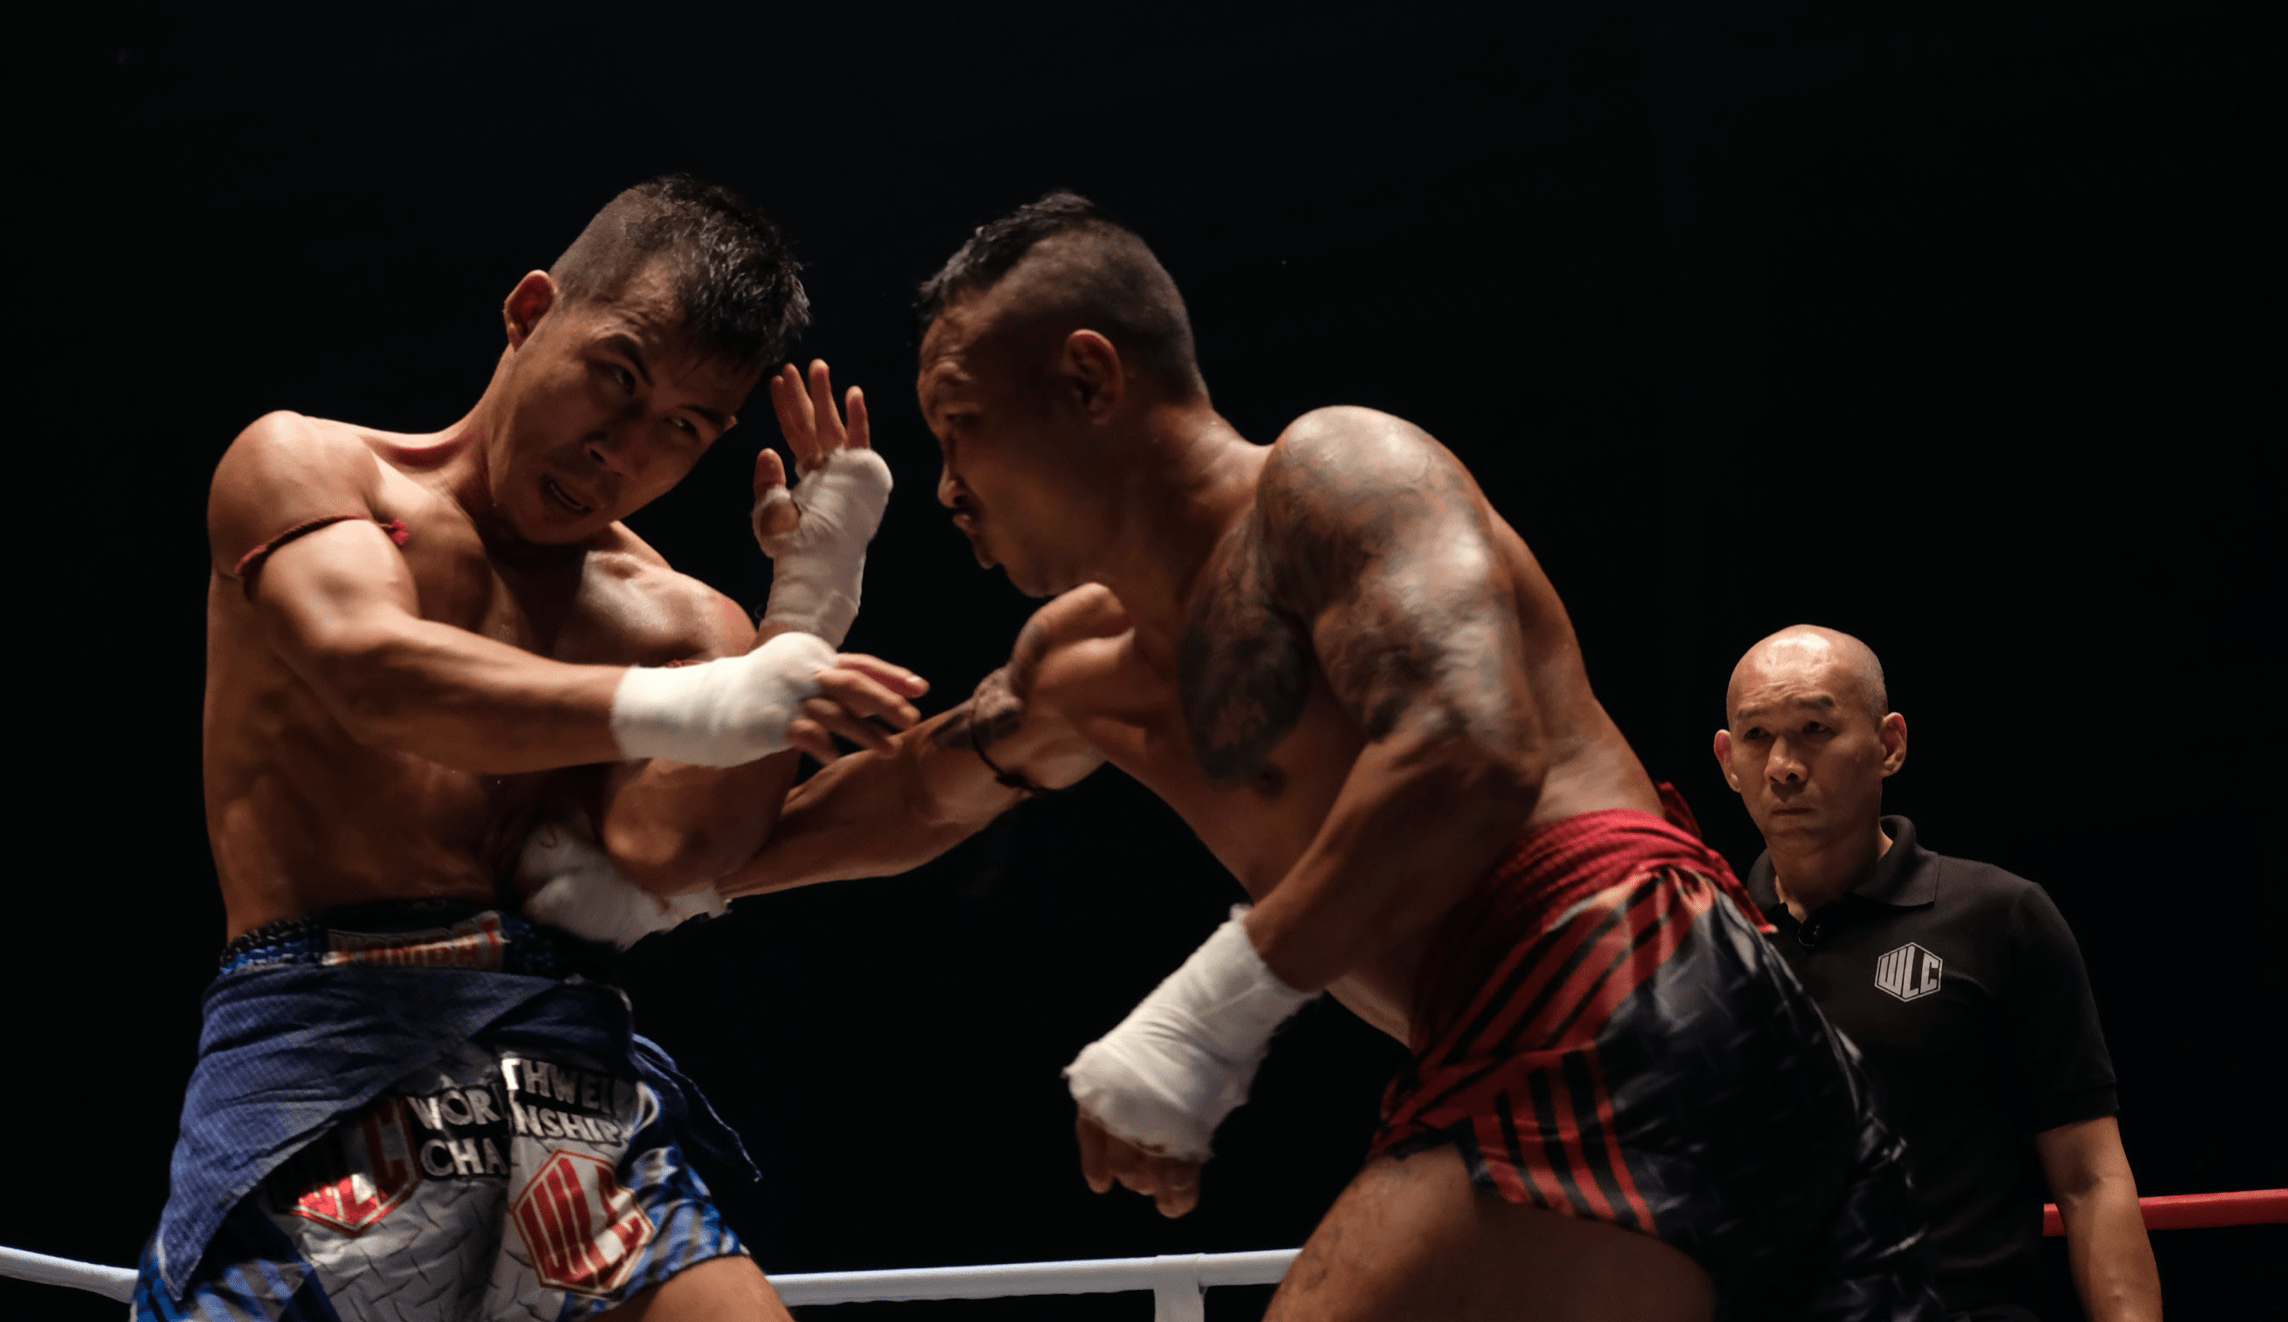 Lethwei: The WLC Announce Safety Protocol For Their Return